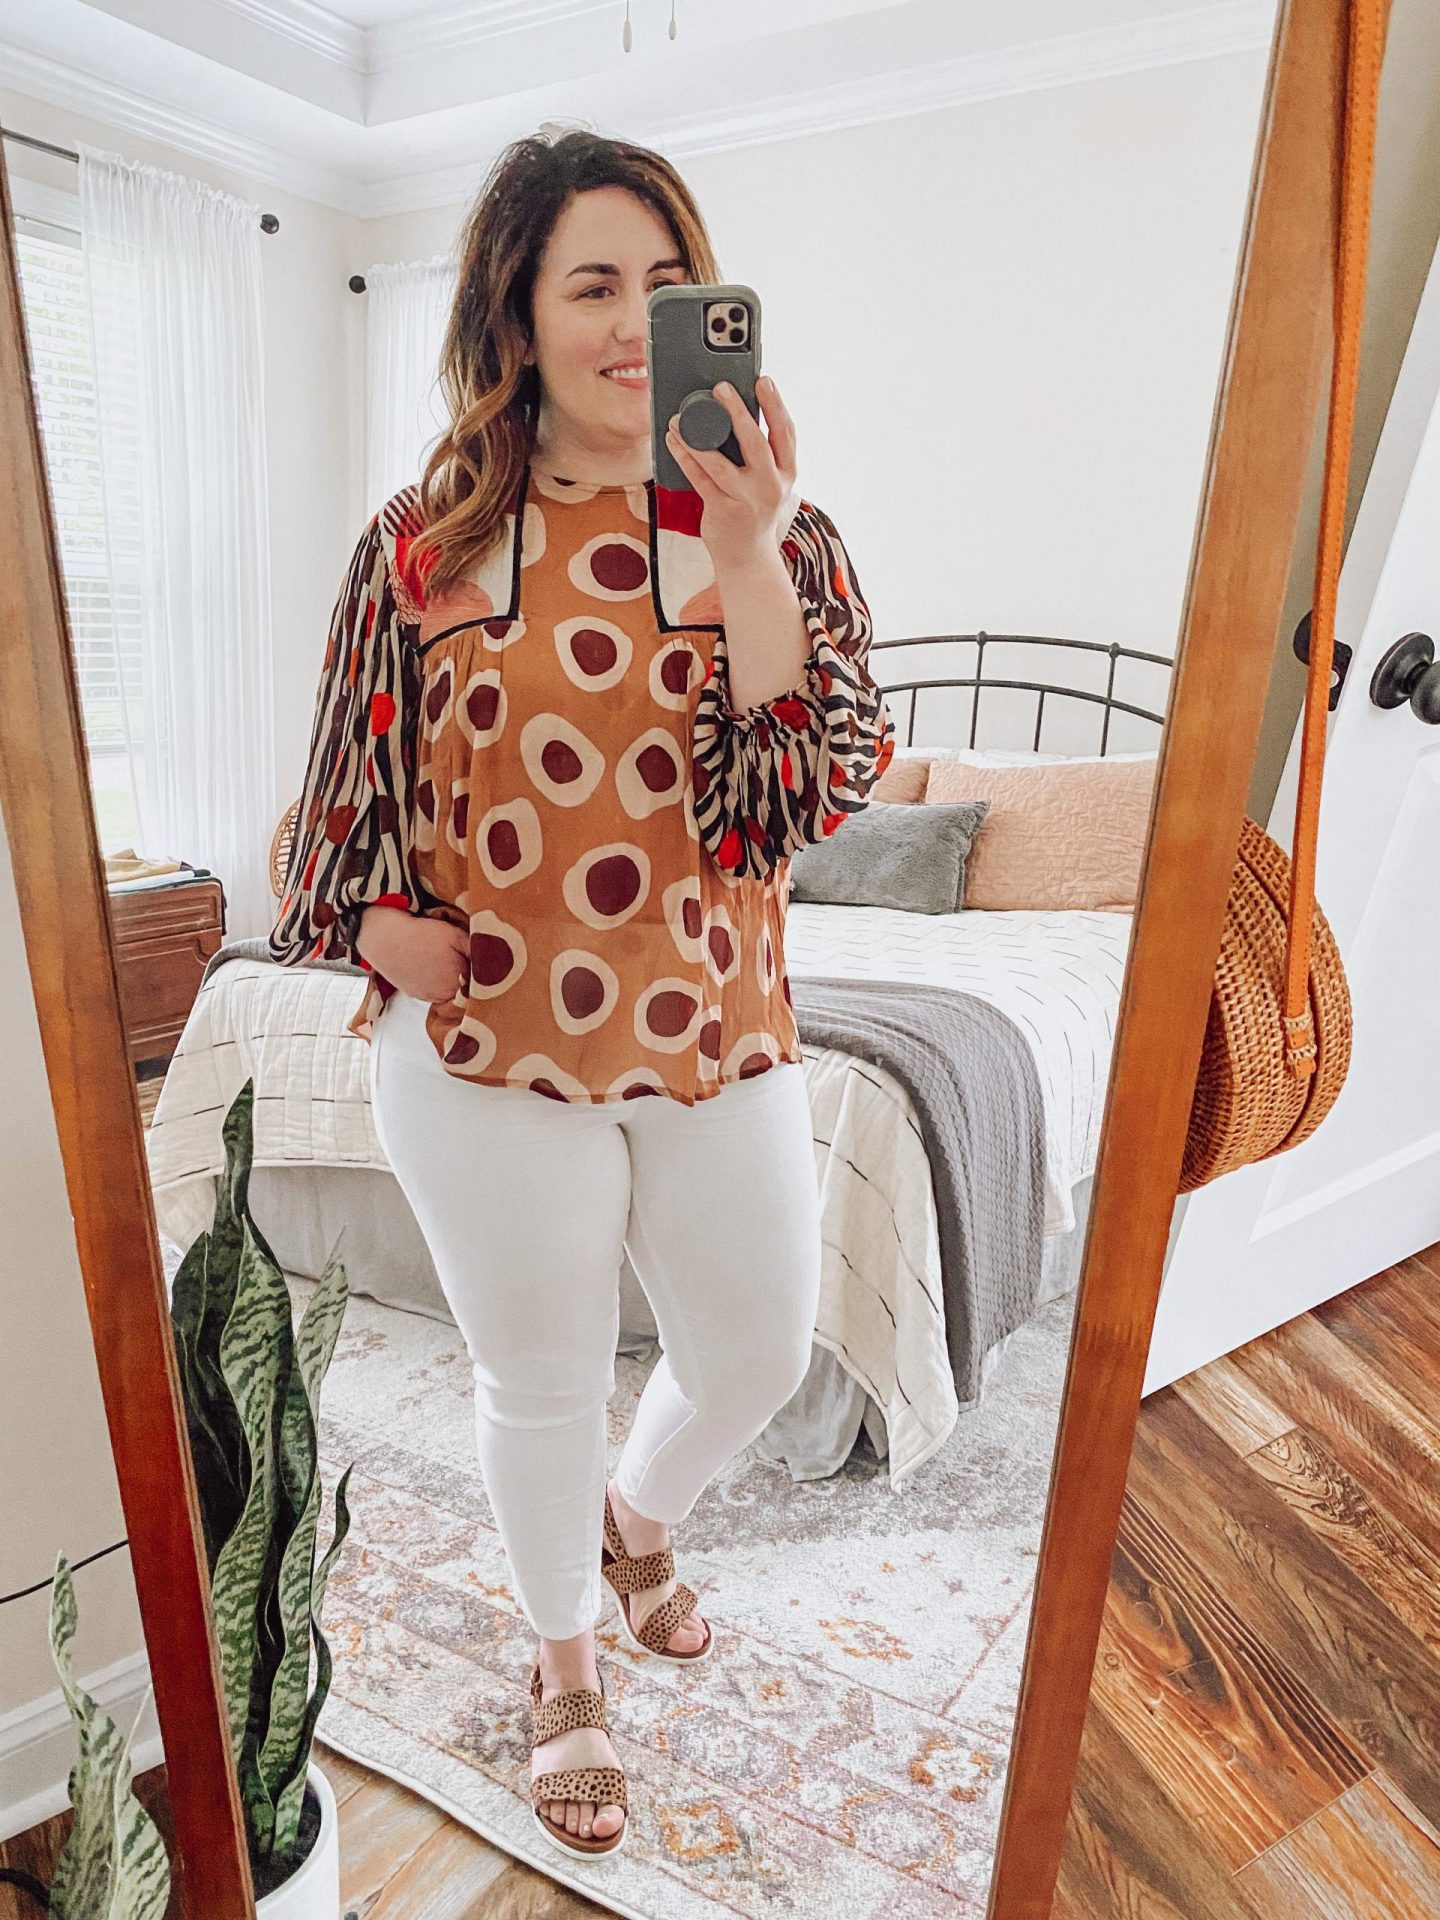 NC blogger Rebecca Lately is sharing some white denim outfit ideas for summer. If you love wearing denim, check this out!